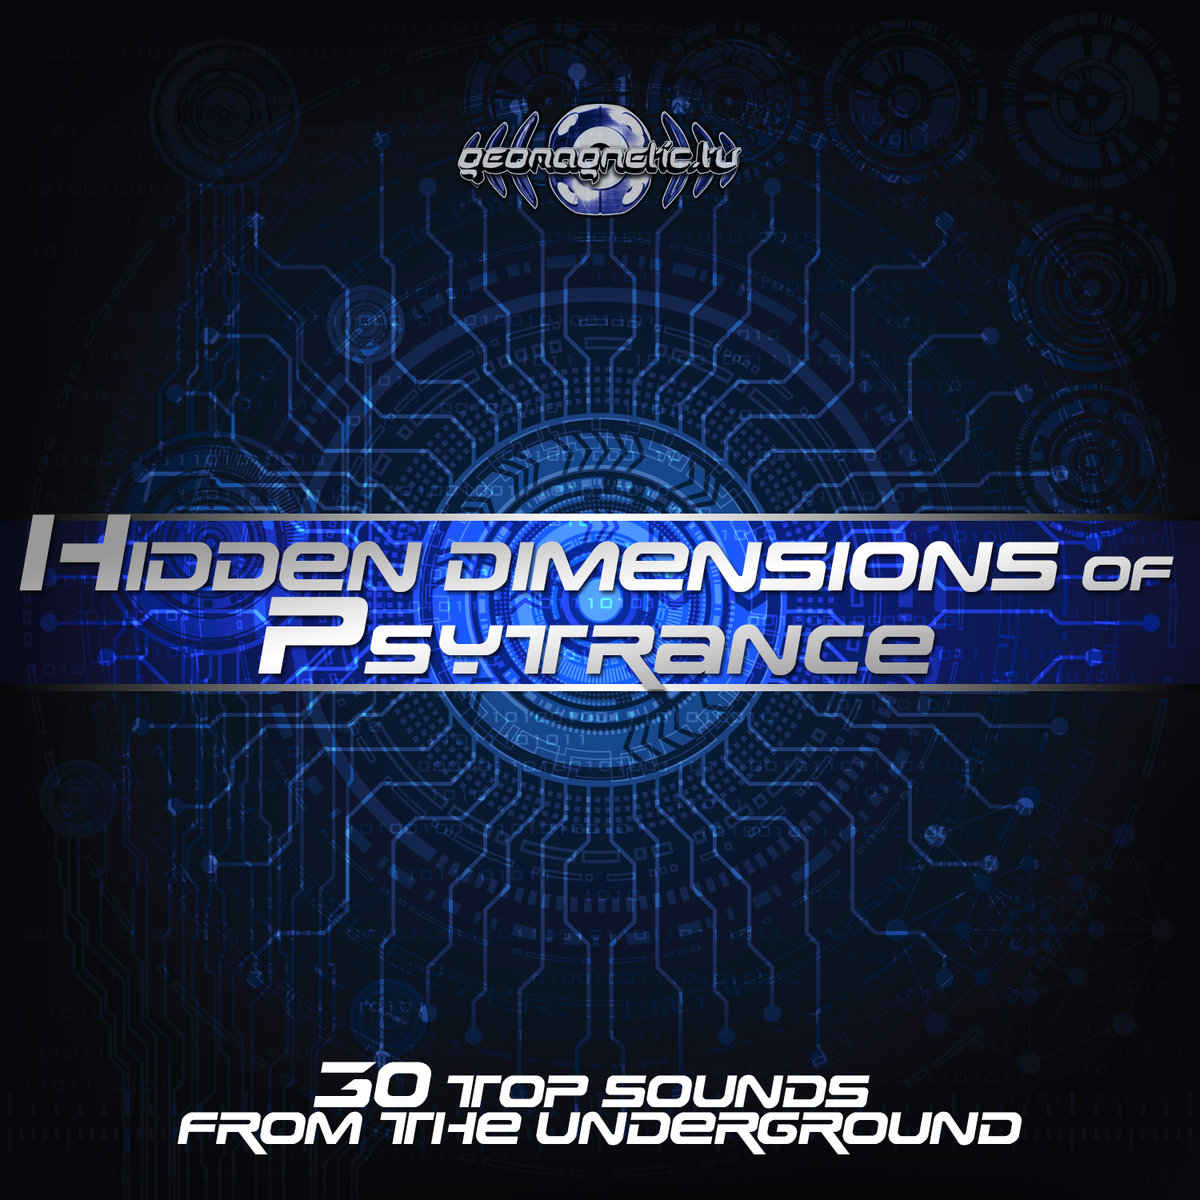 Synchrosphere - Blue Book @ 'Various Artists - Hidden Dimensions of Psytrance (30 Top Sounds From The Underground)' album (electronic, goa)